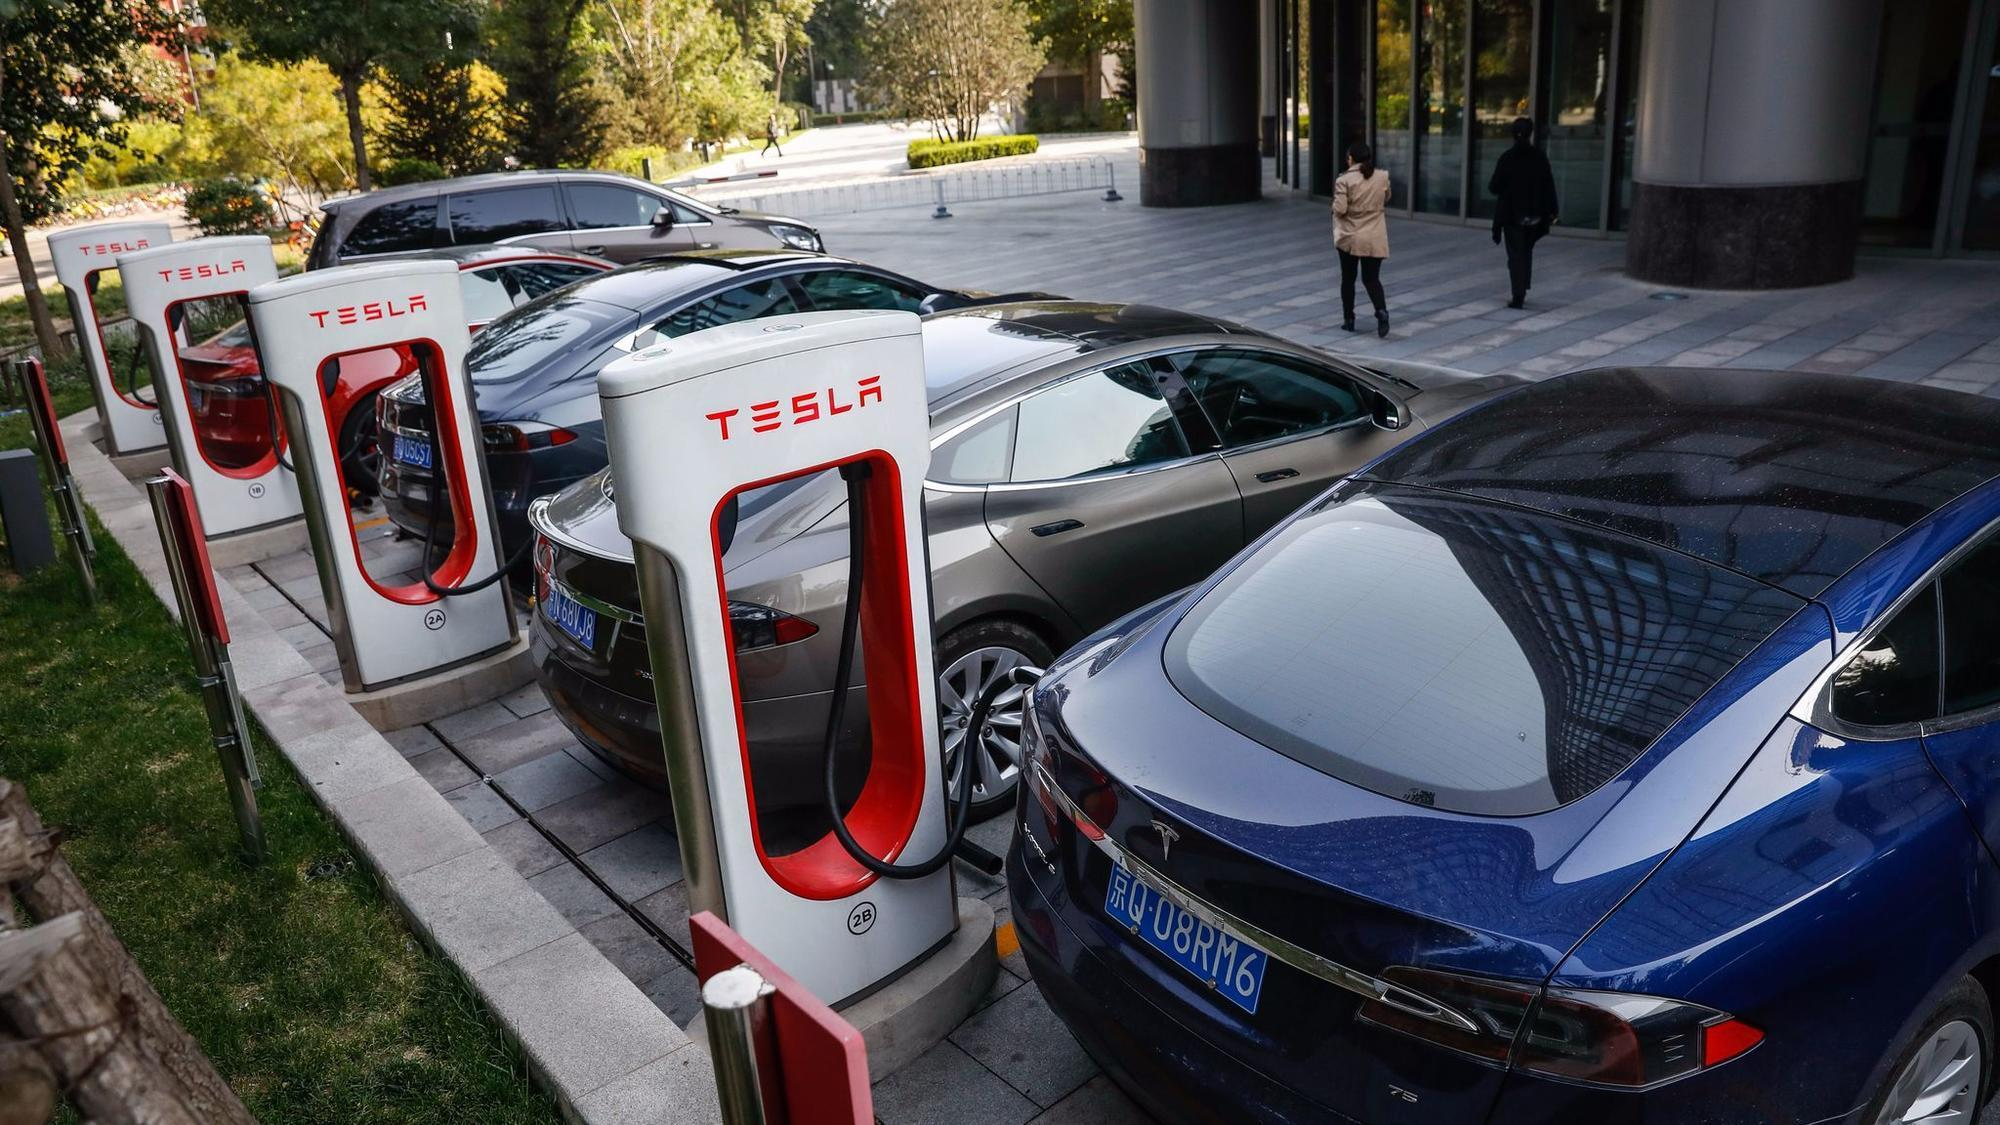 tesla appears ready   cars  china   terms   relationship  unclear la times